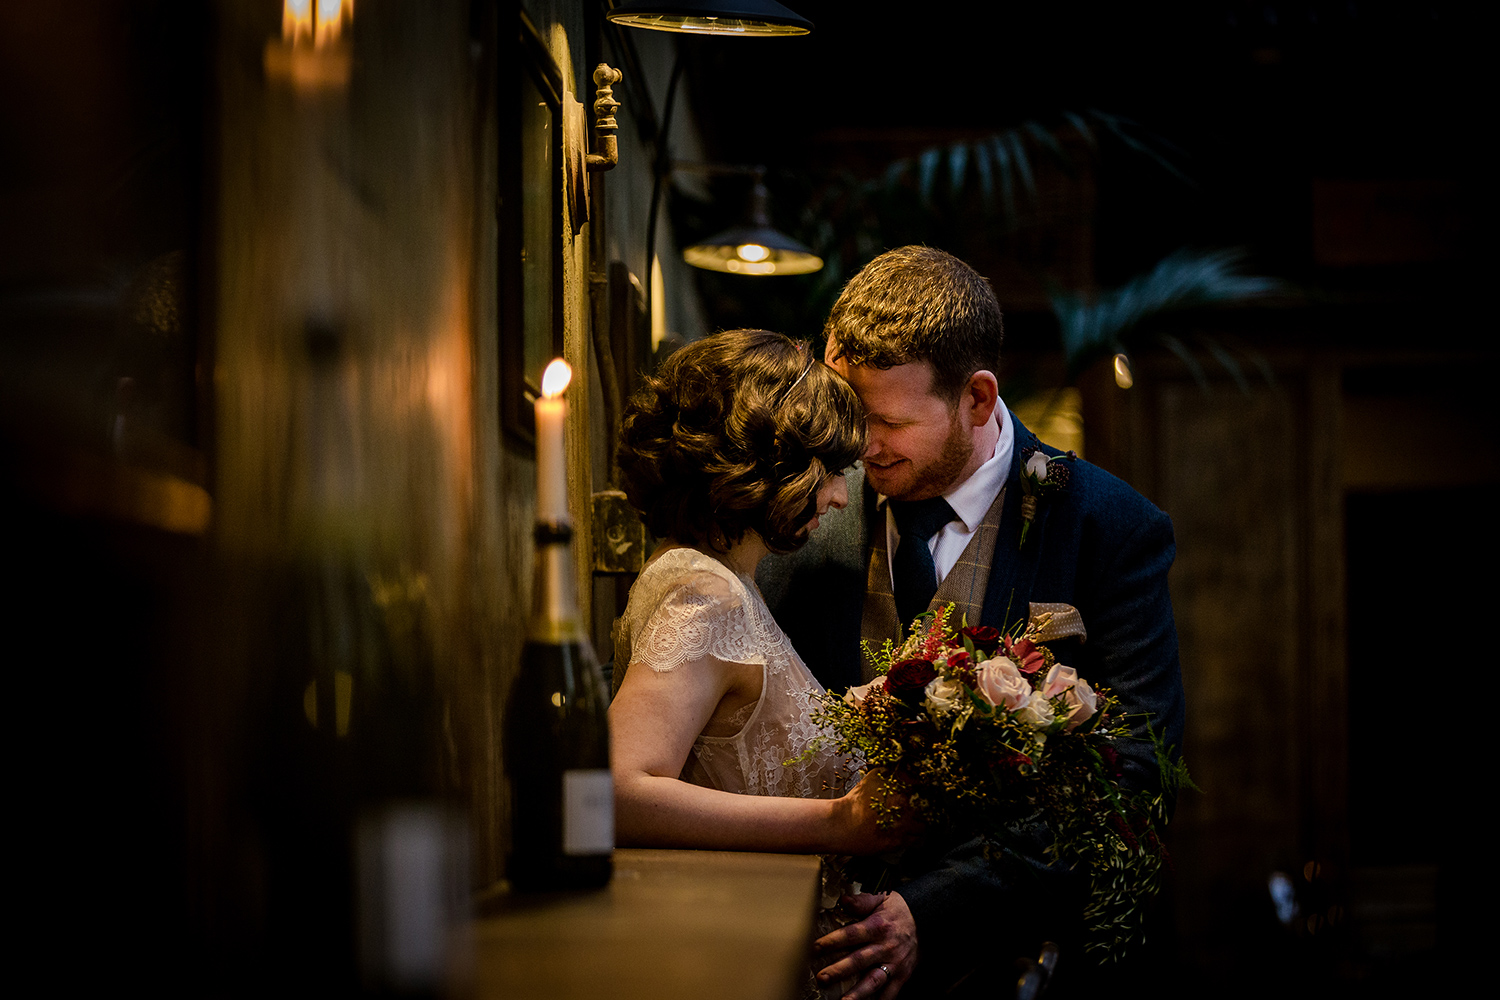 The bride and groom during their Holmes Mill Wedding in Clitheroe